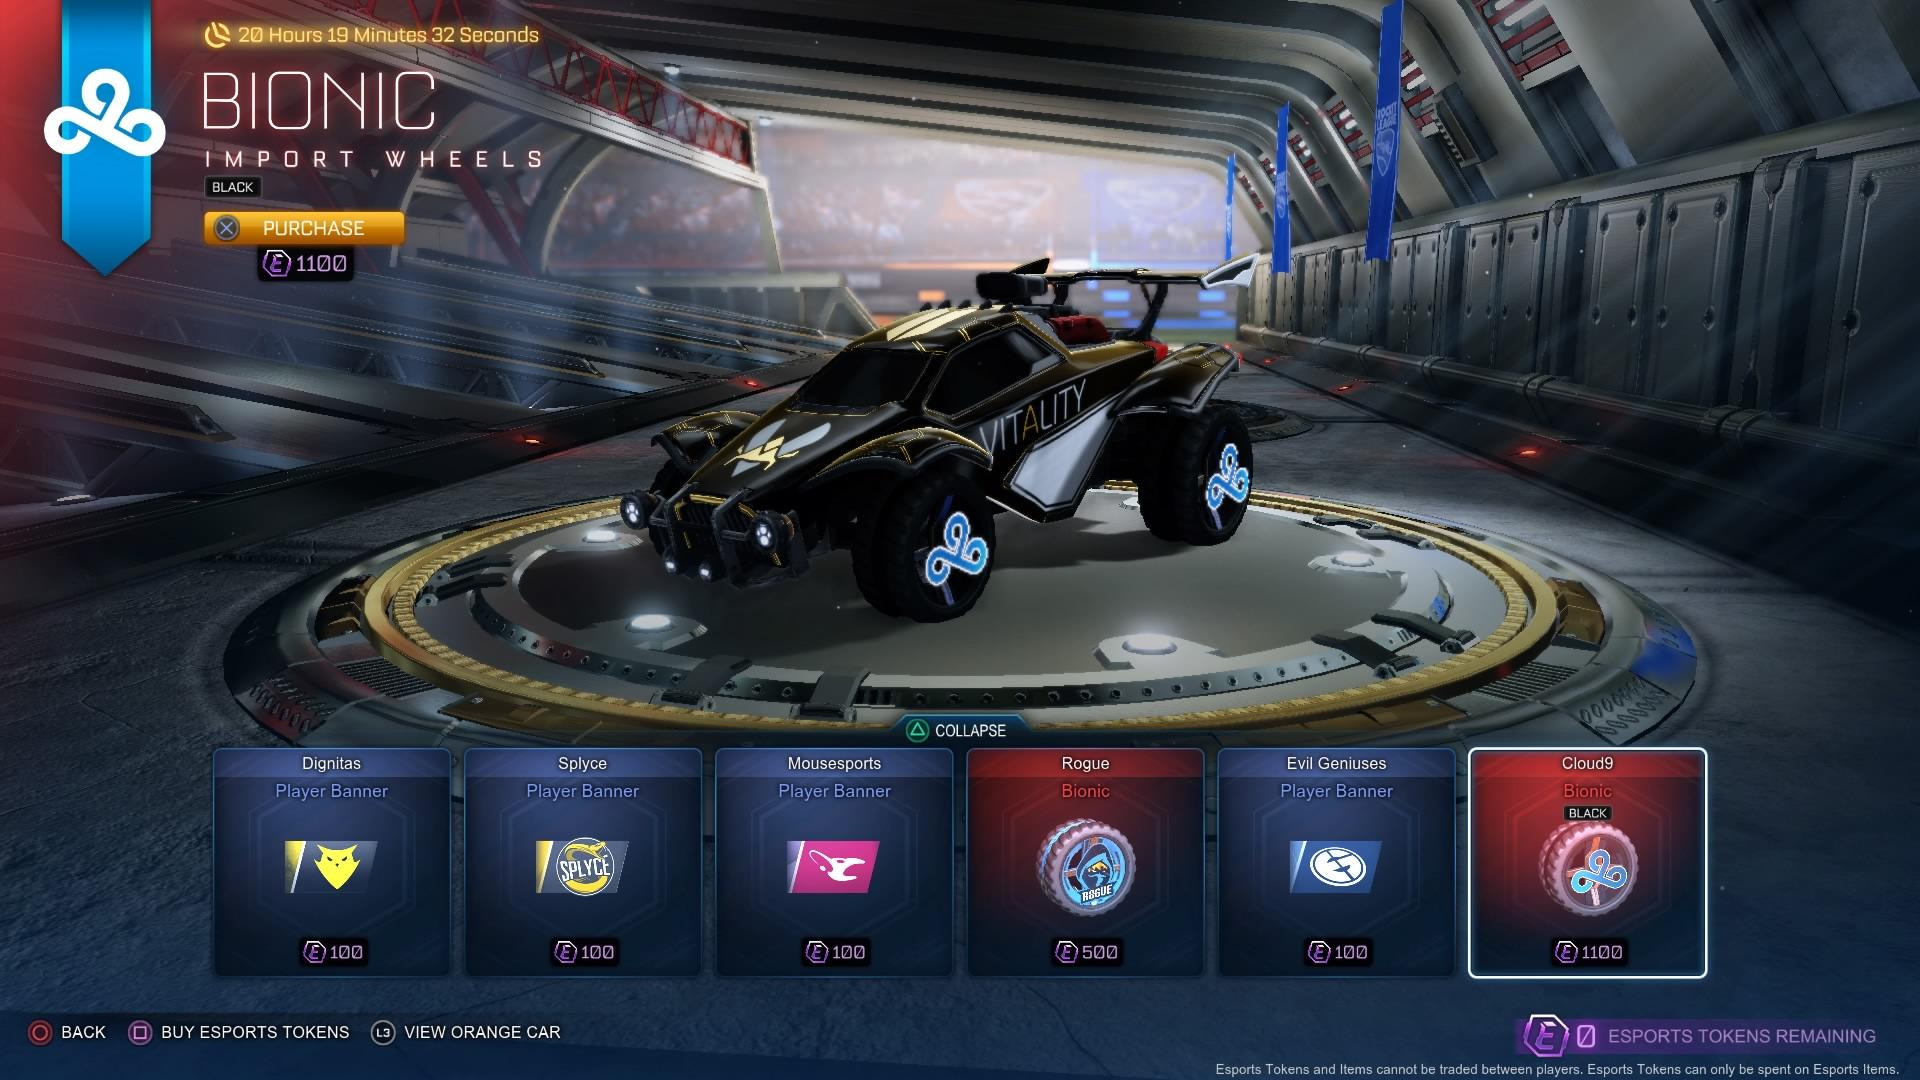 Psyonix Do You Expect Me Anyone To Pay 10 For These Wheels One Wheel 10 The Rp Is 10 Bundles Of Battle Cars Wheels Are Like 3 Is This Reasonable Has Anyone Bought This Rocketleague